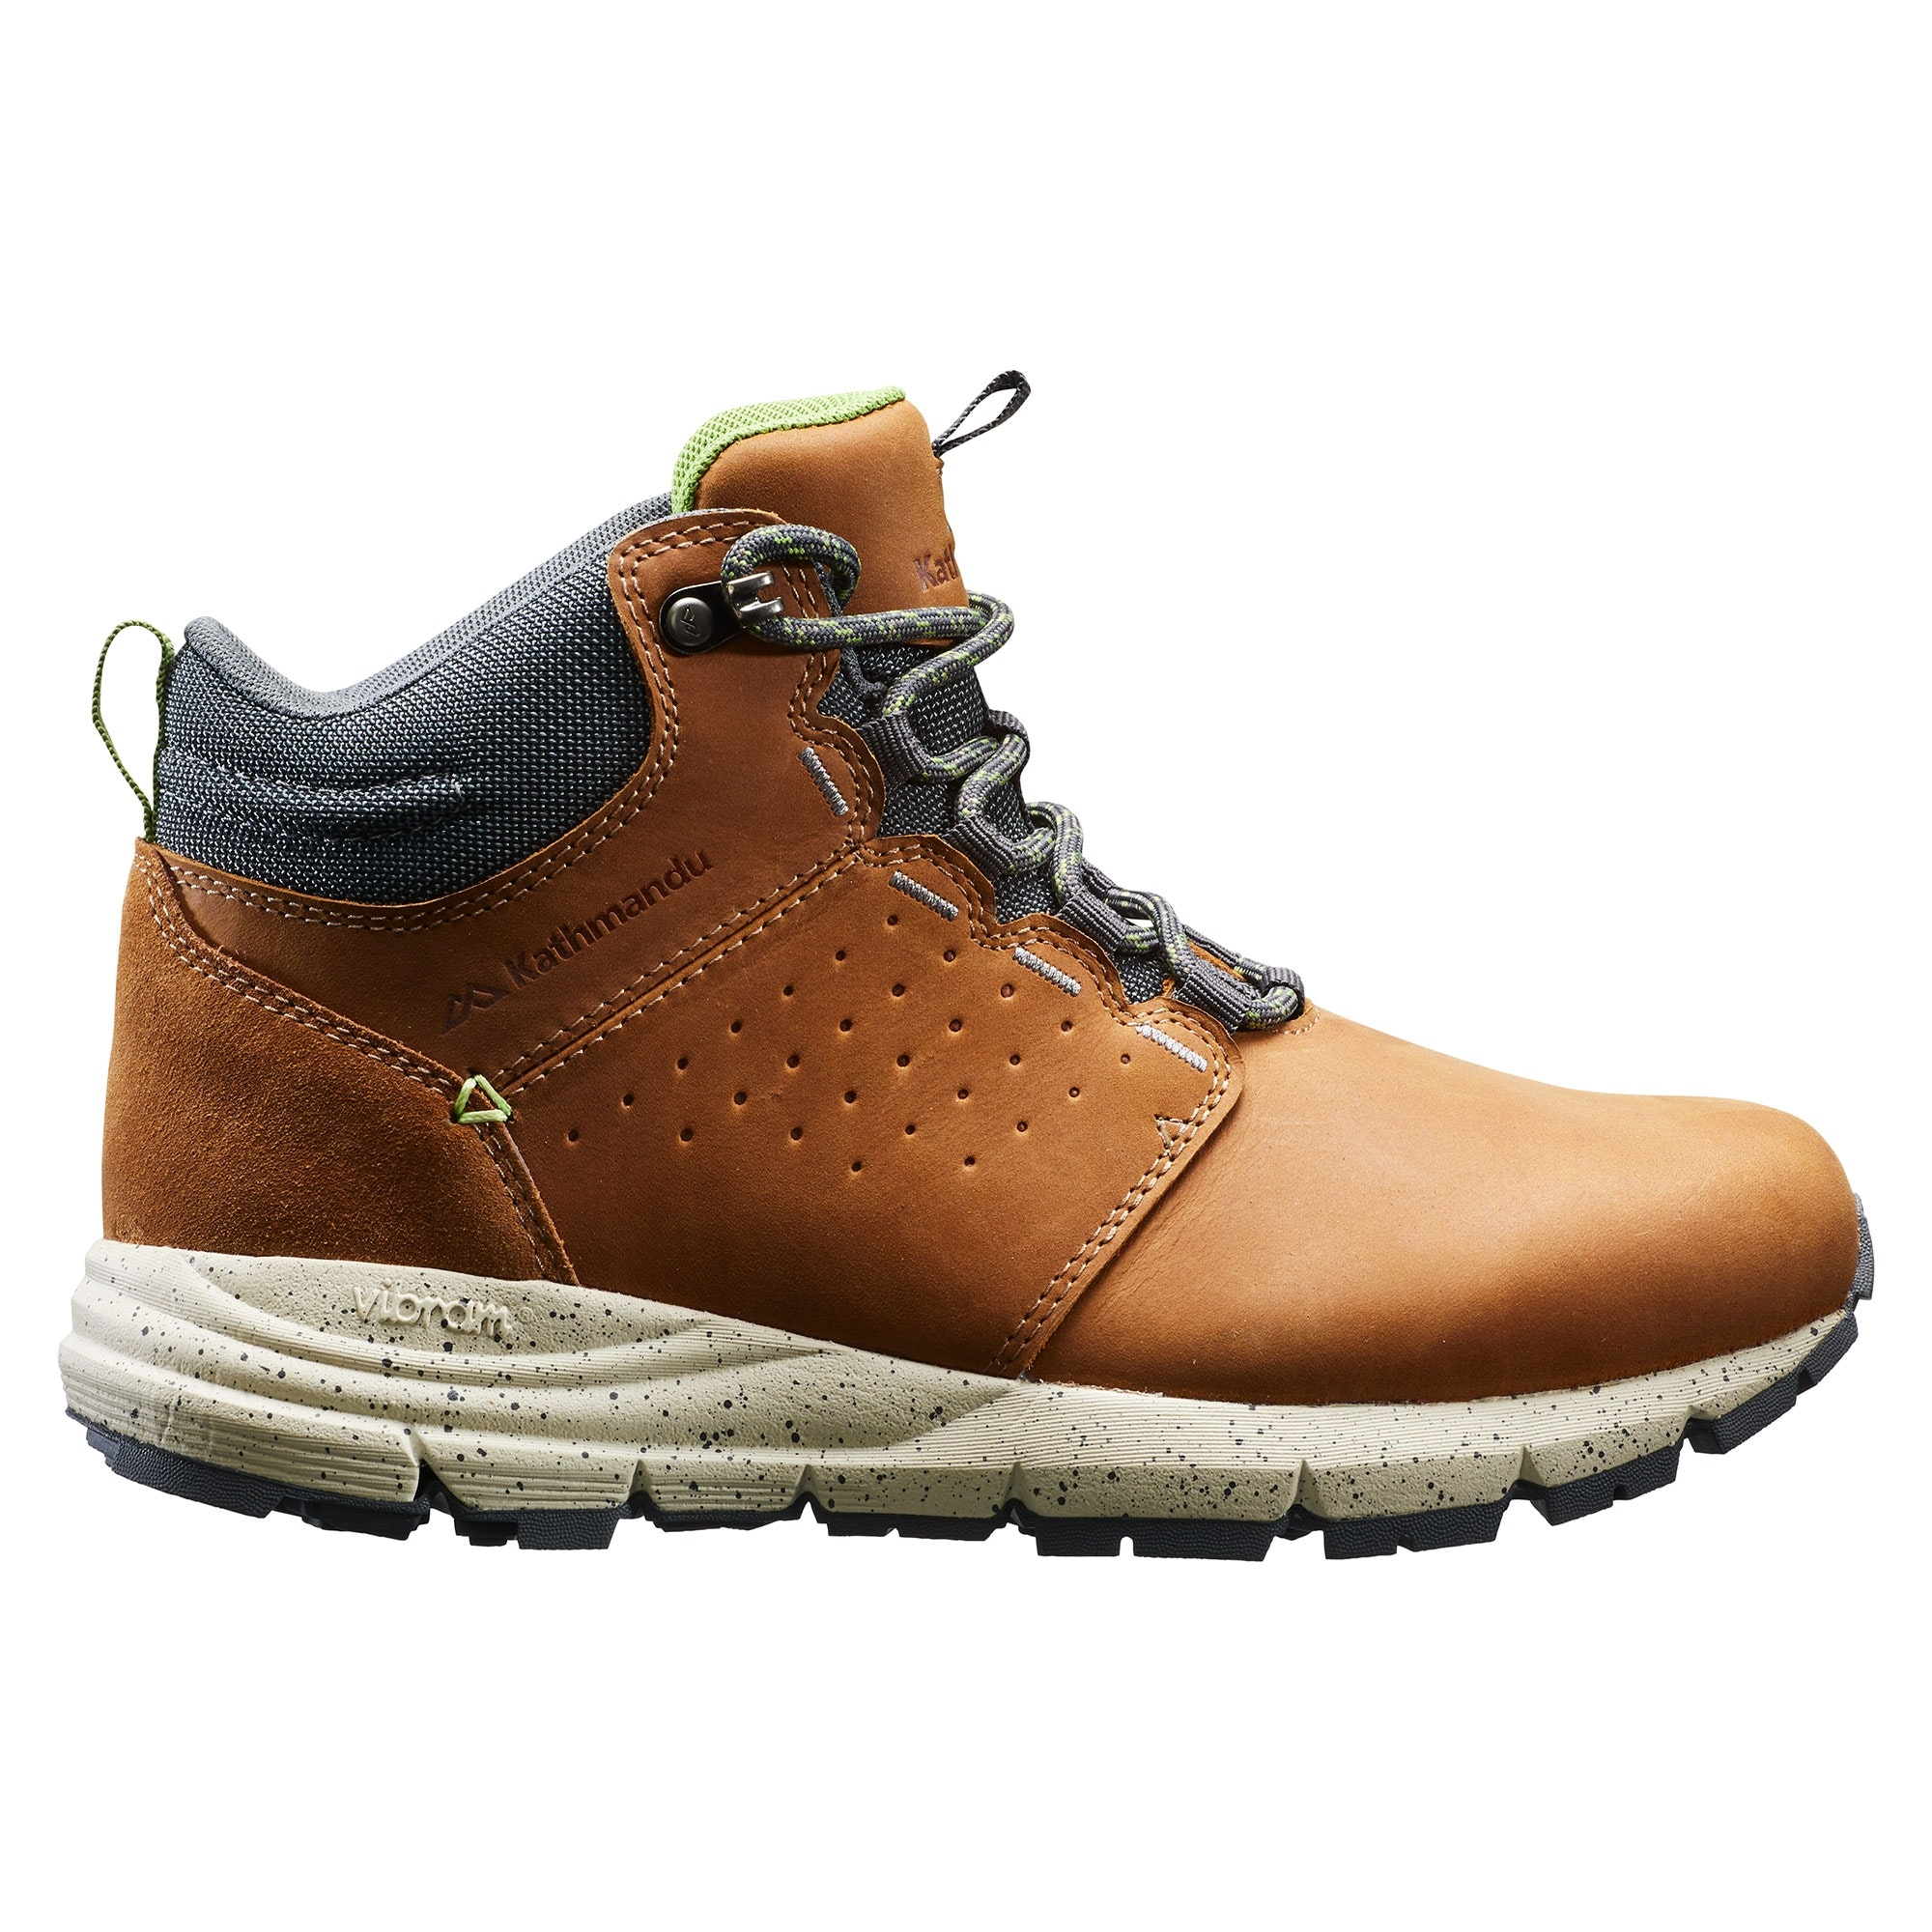 Federate Women's Boots